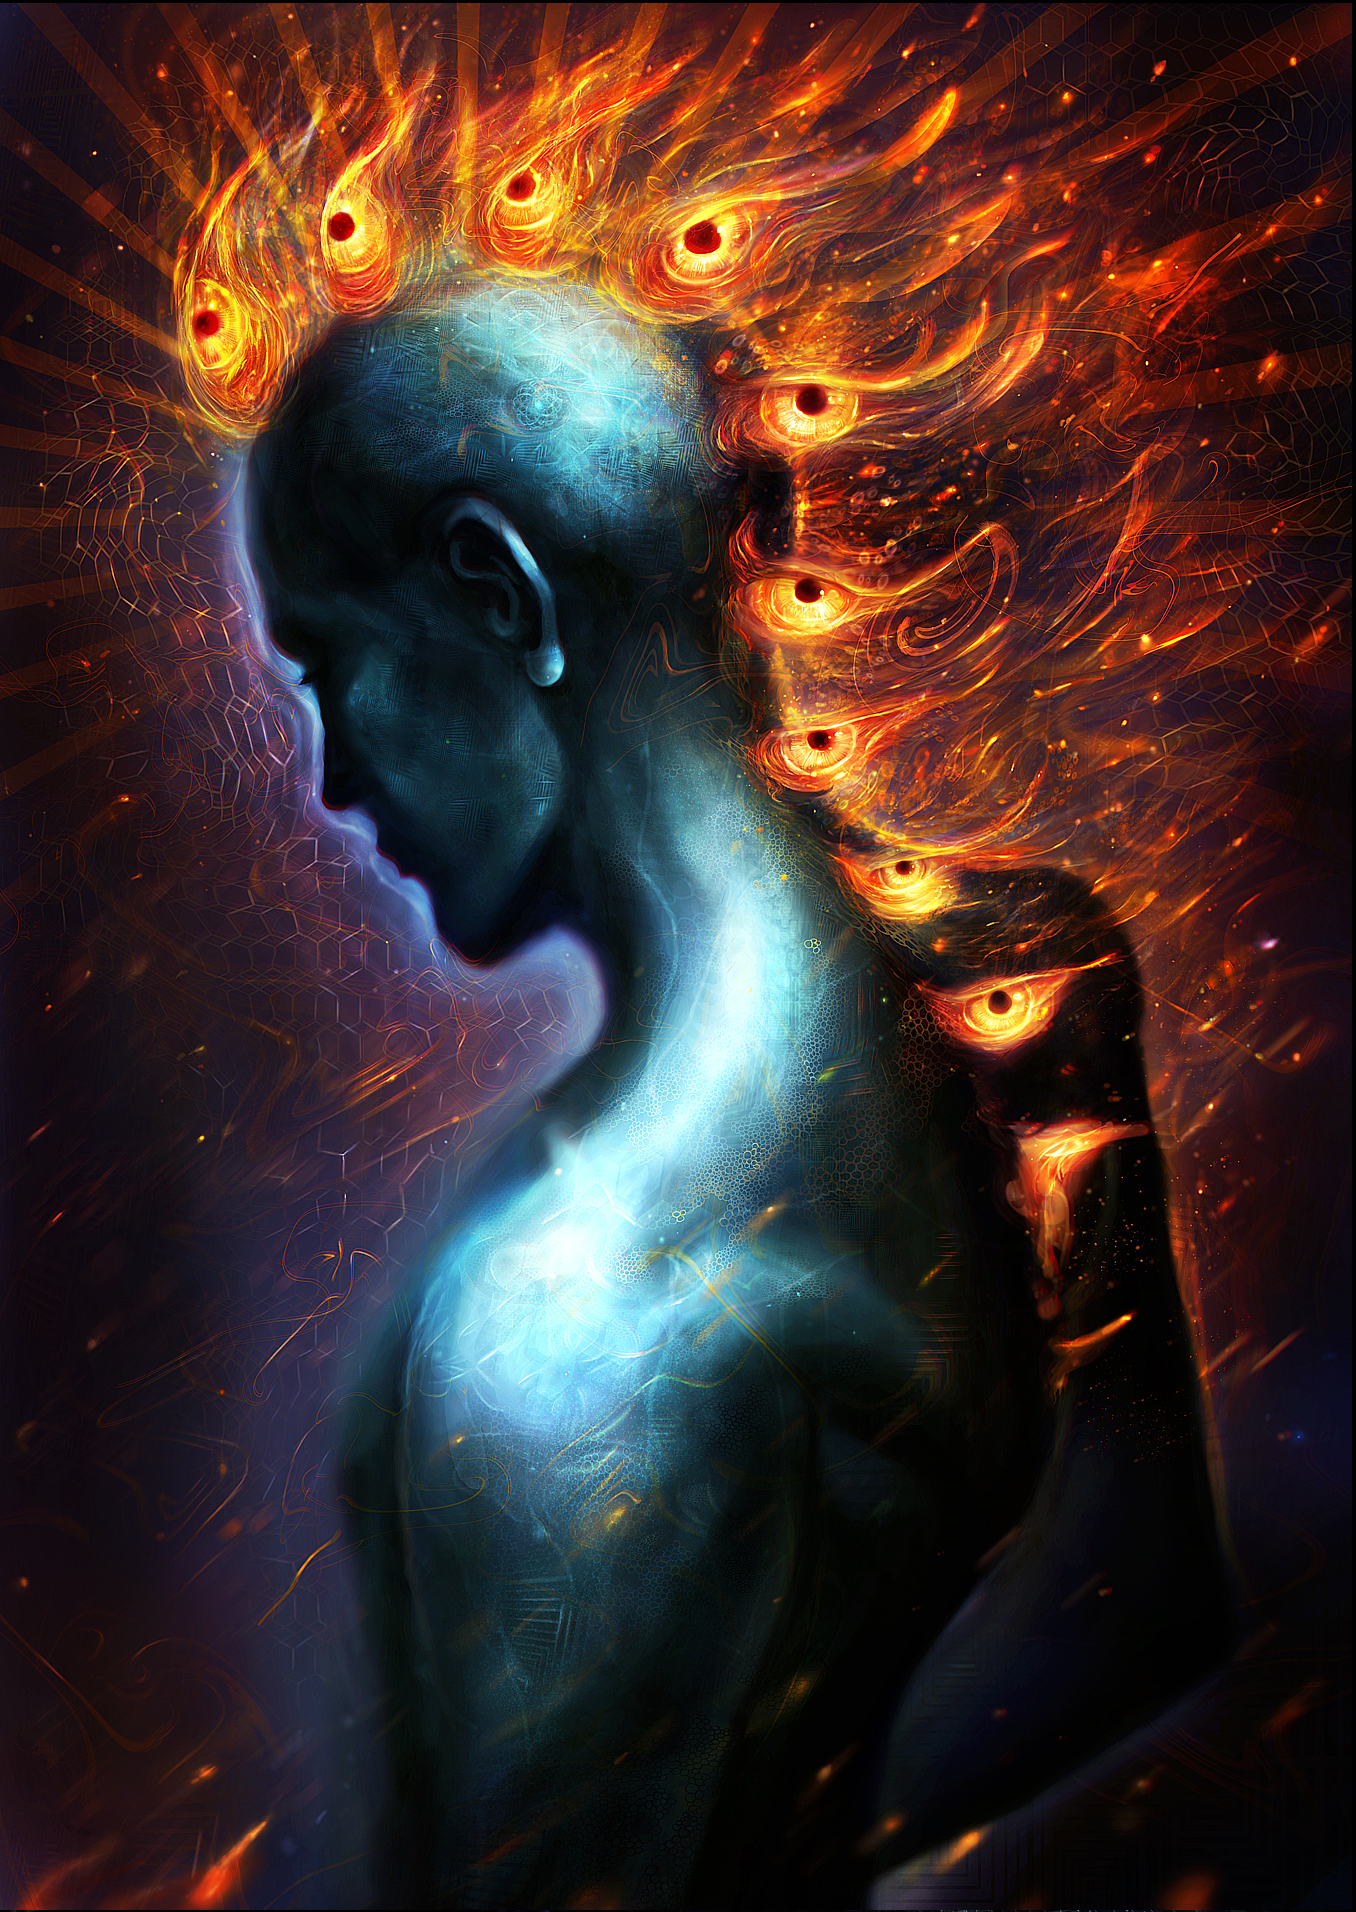 Real Life Twin Flame Separation And Surrender: Louis Dyer Digital Visionary Artist